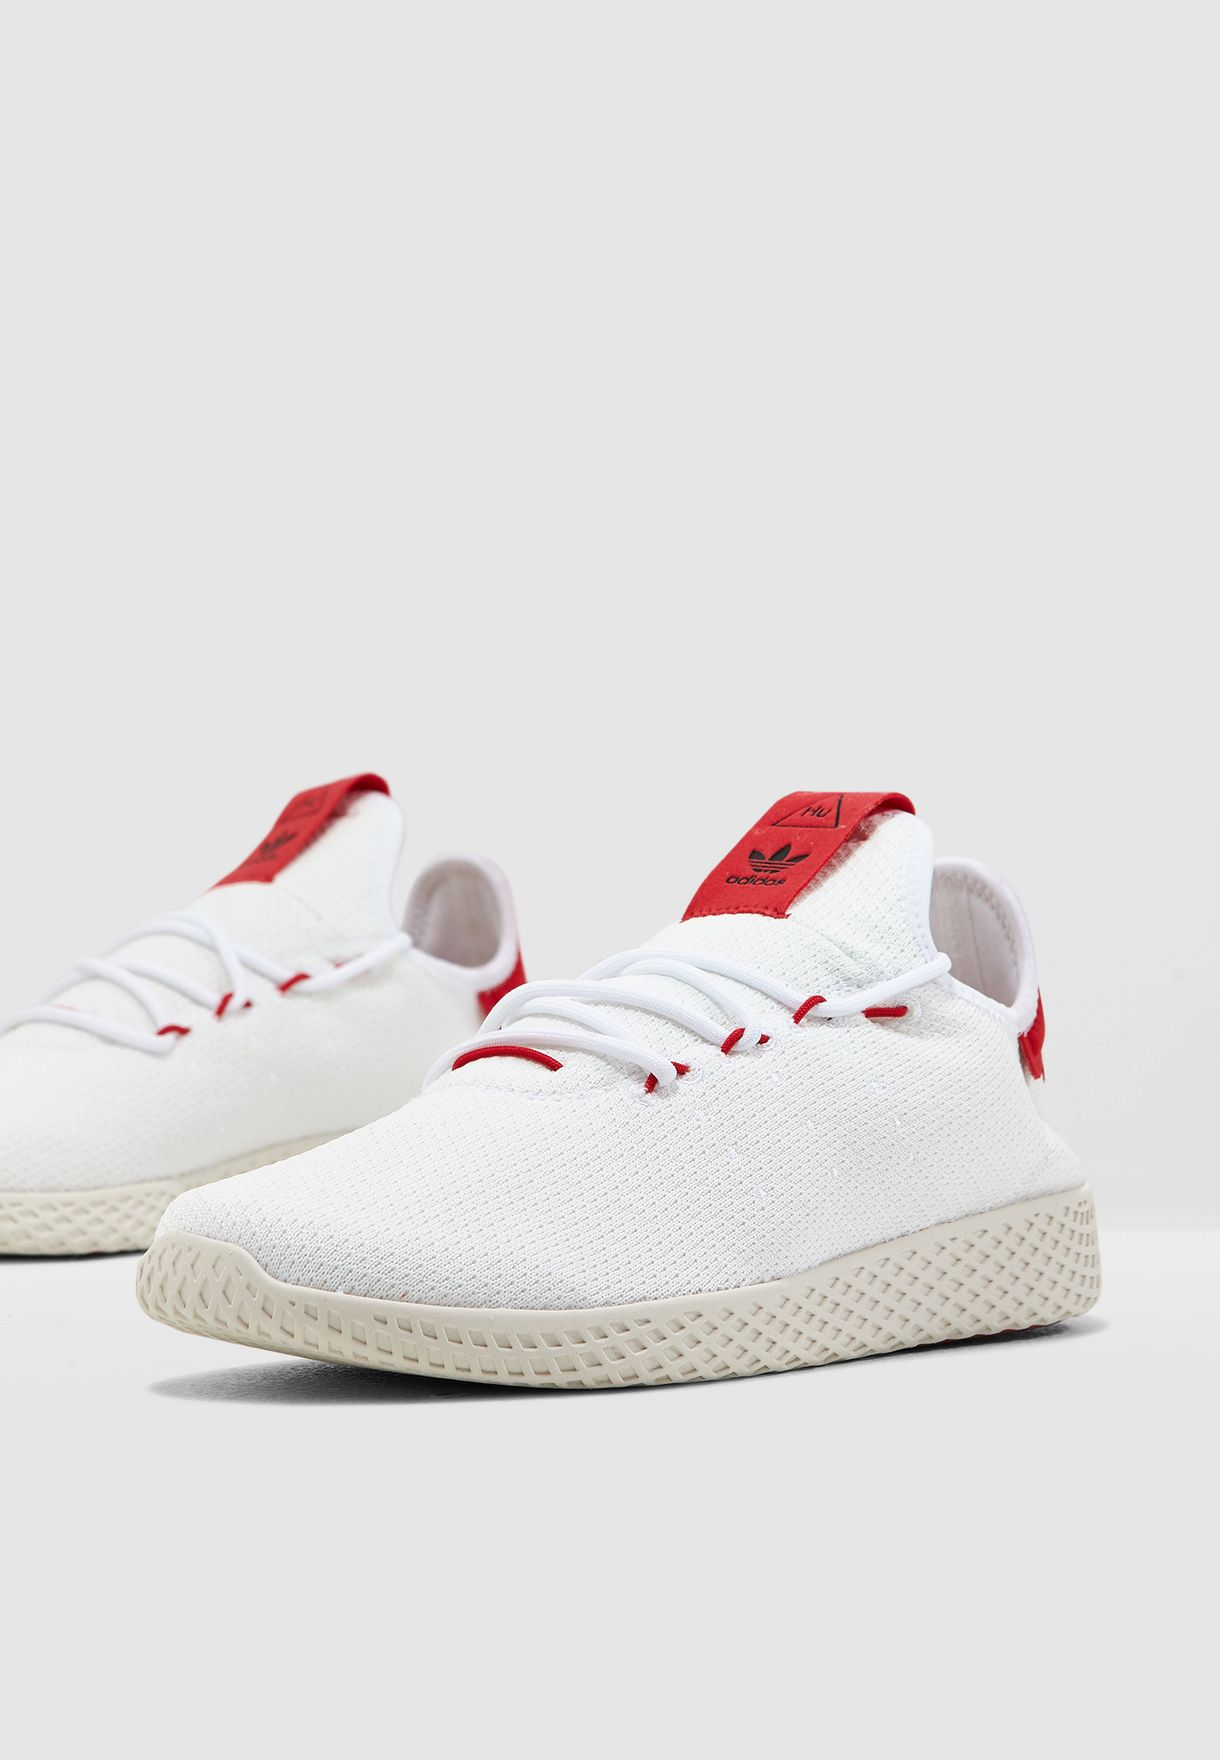 6594fea209ae3 Shop adidas Originals white Pharrell Williams Tennis Hu BD7530 for ...